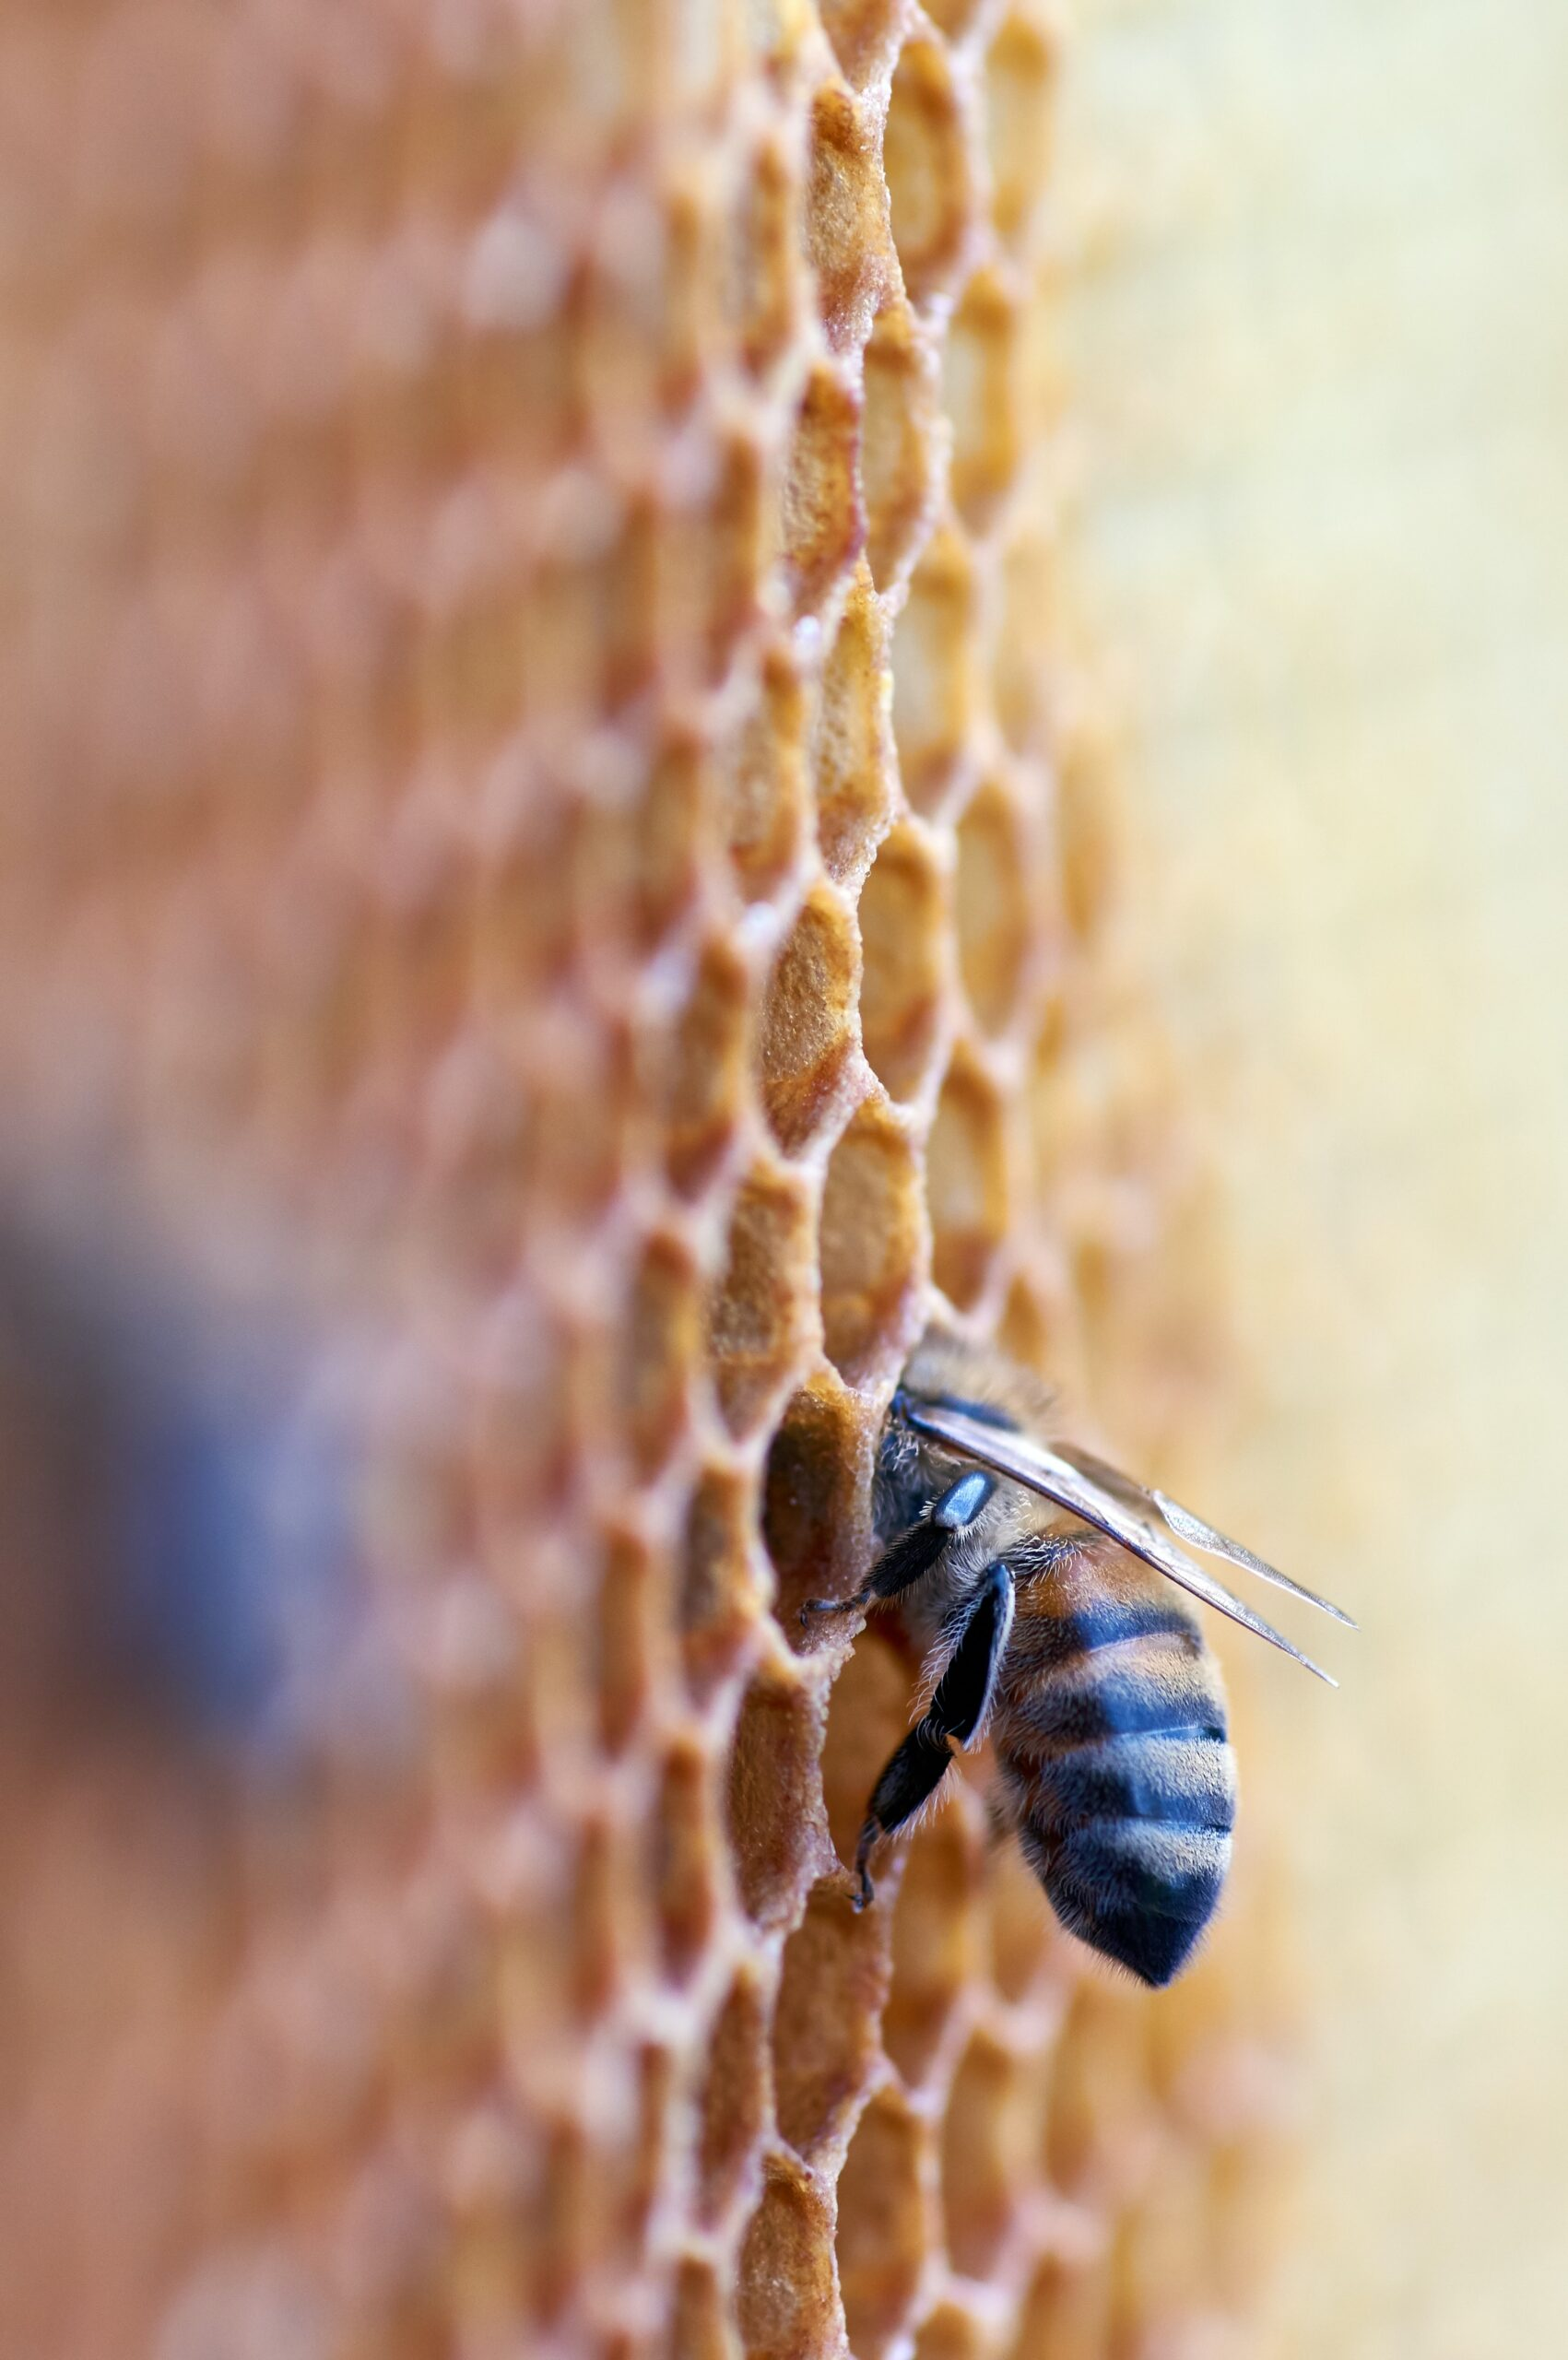 the effects of nuclear tests are still in nature, and perhaps influence the current decline of bees